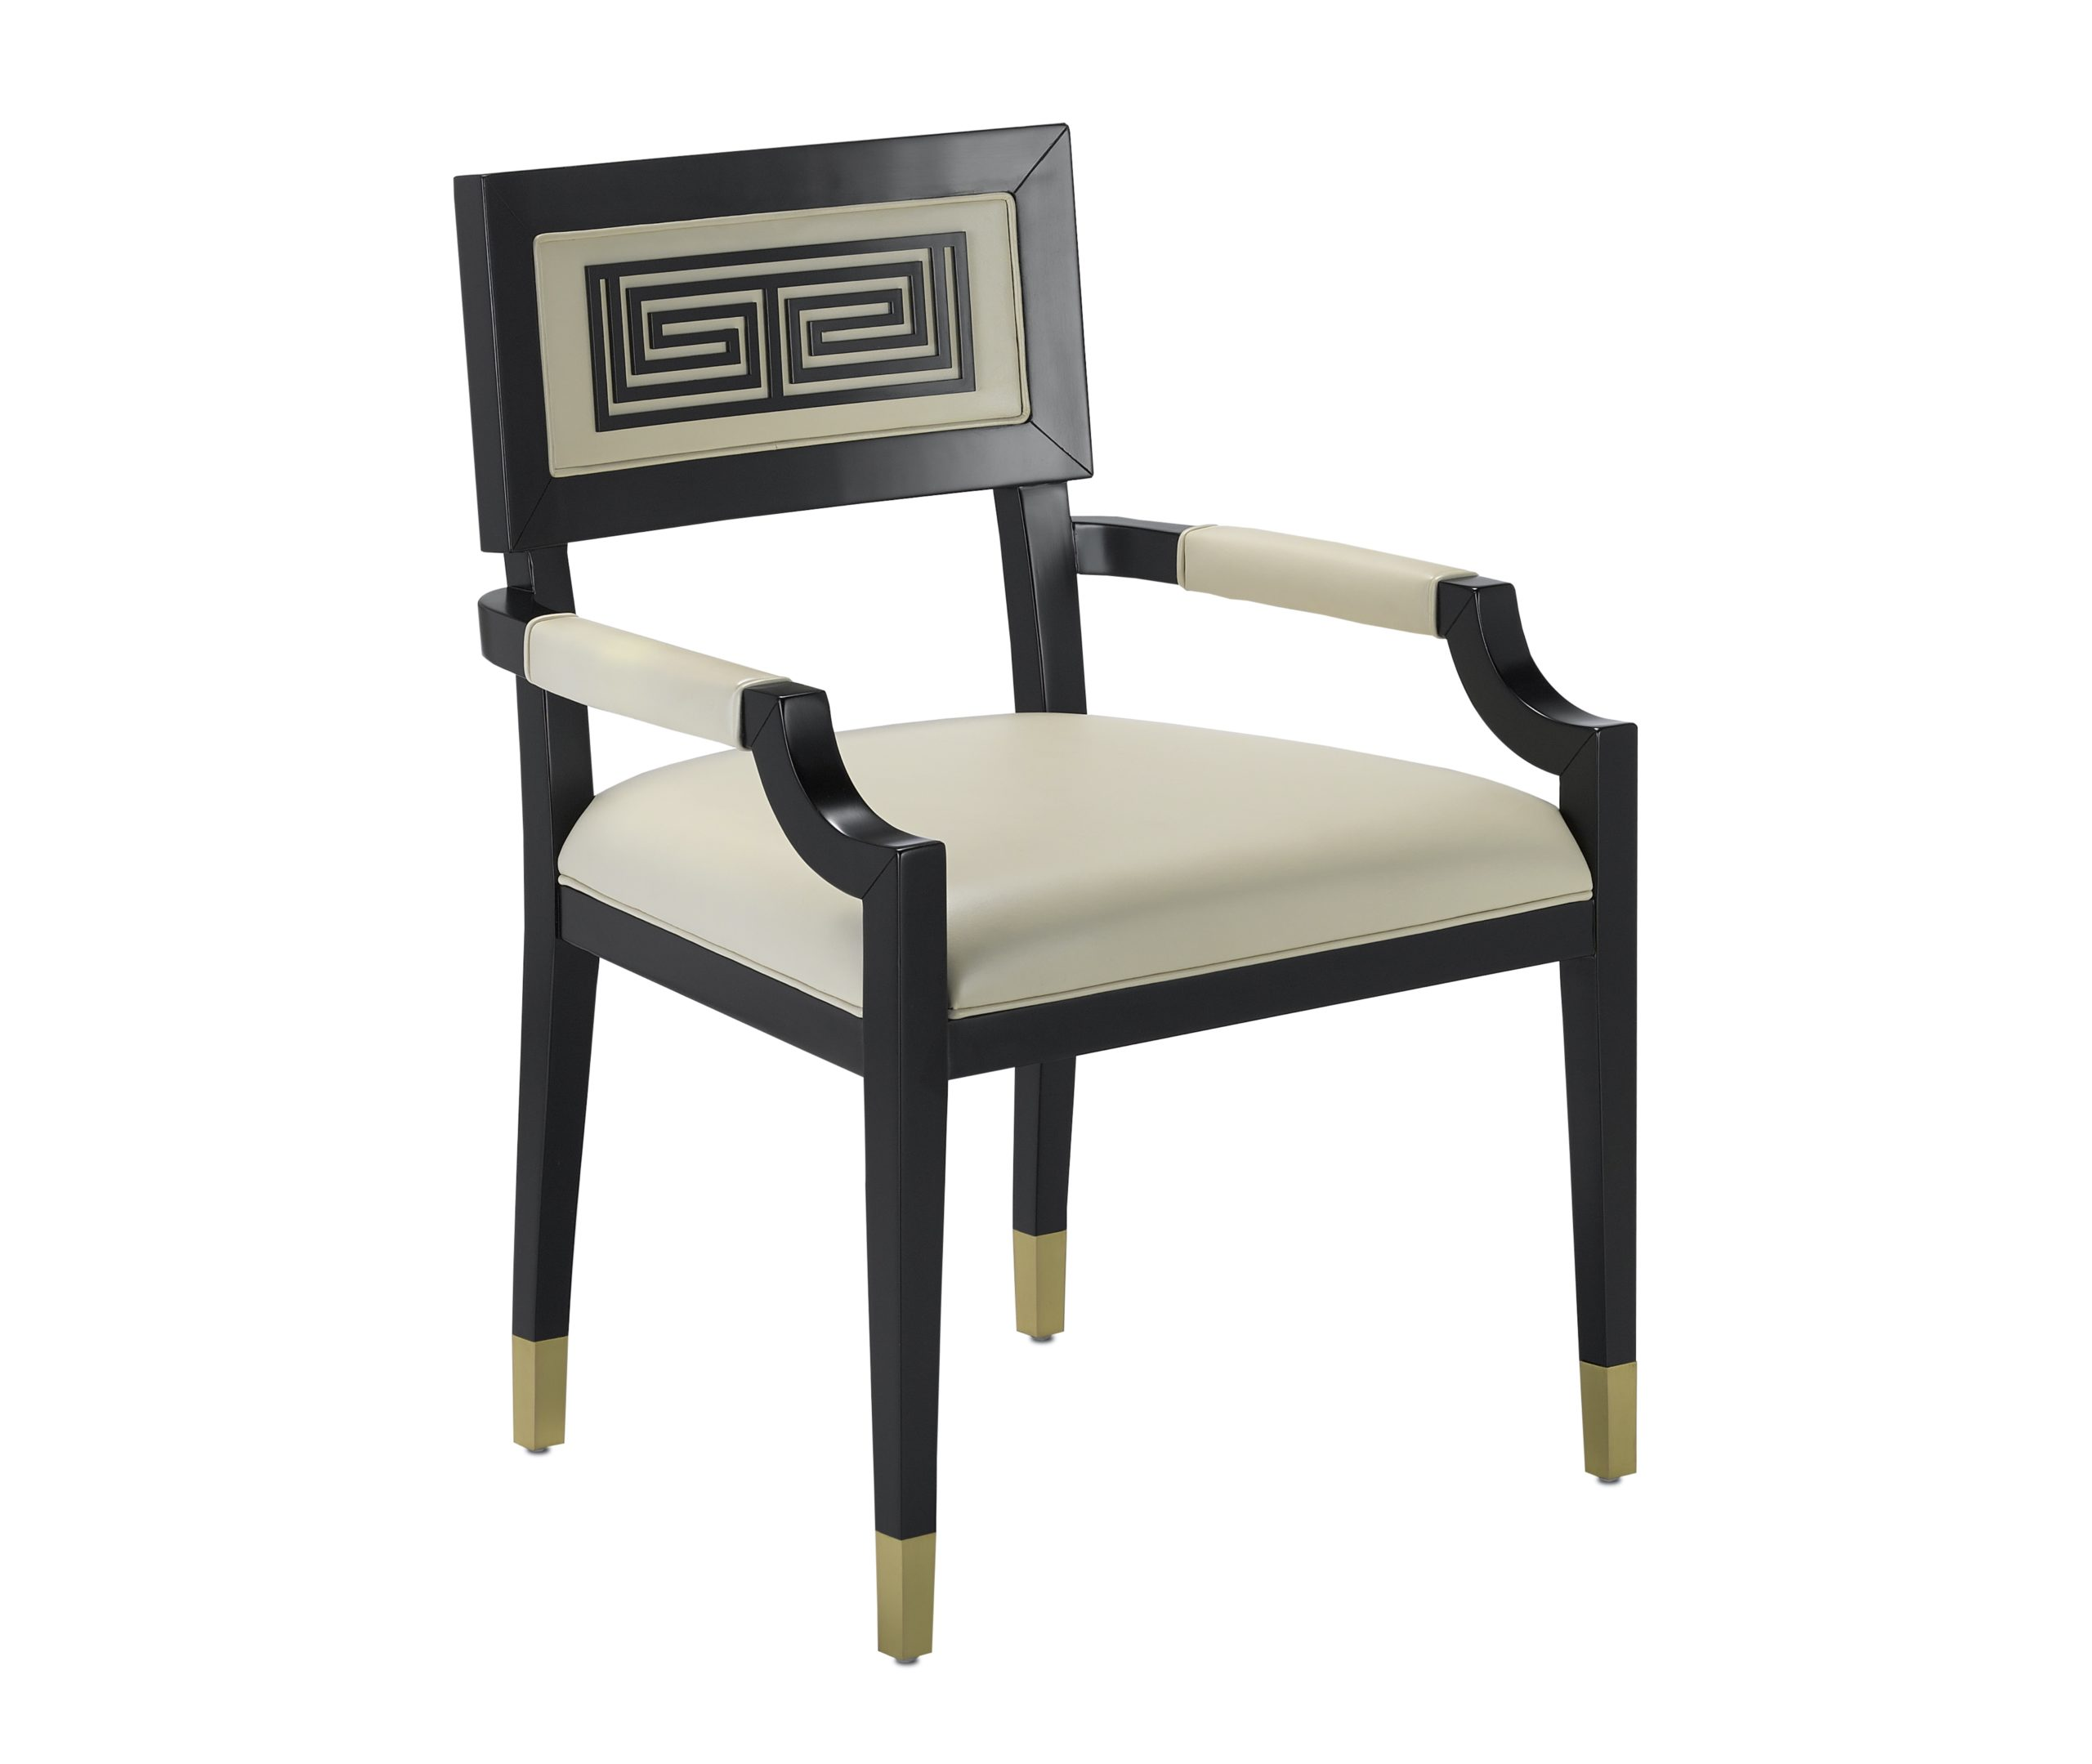 NYDC_WNWN_currey_and_co_products_artemis_leather_chair_7000